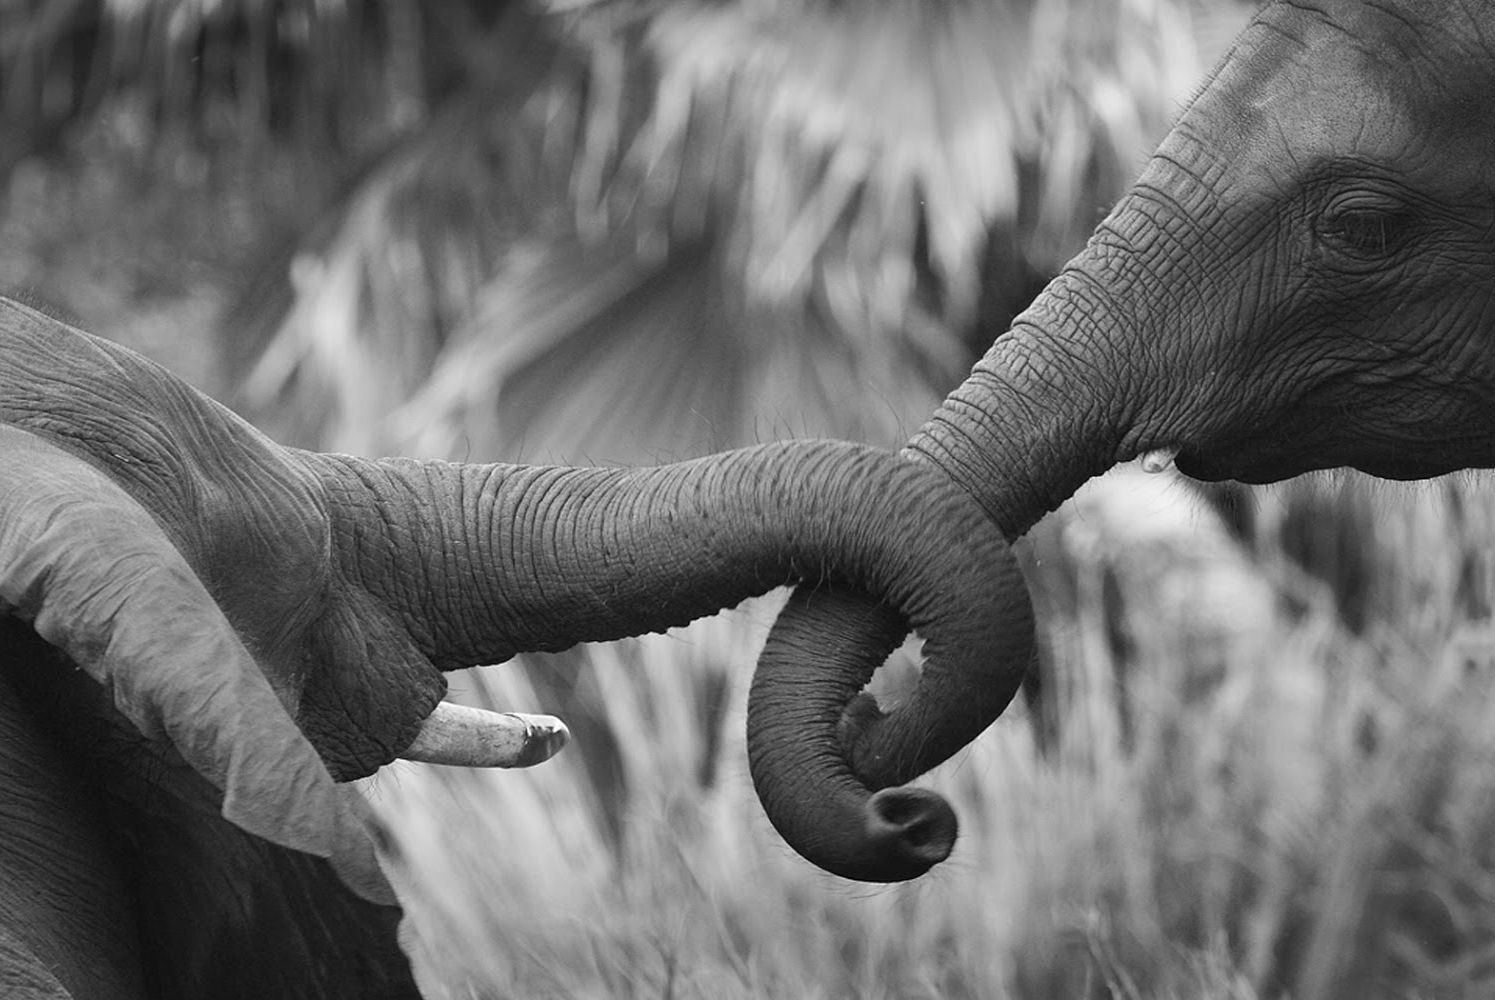 Black & White Mother and Baby Elephant Art Silk Print Poster 24x36inch(60x90cm) 088